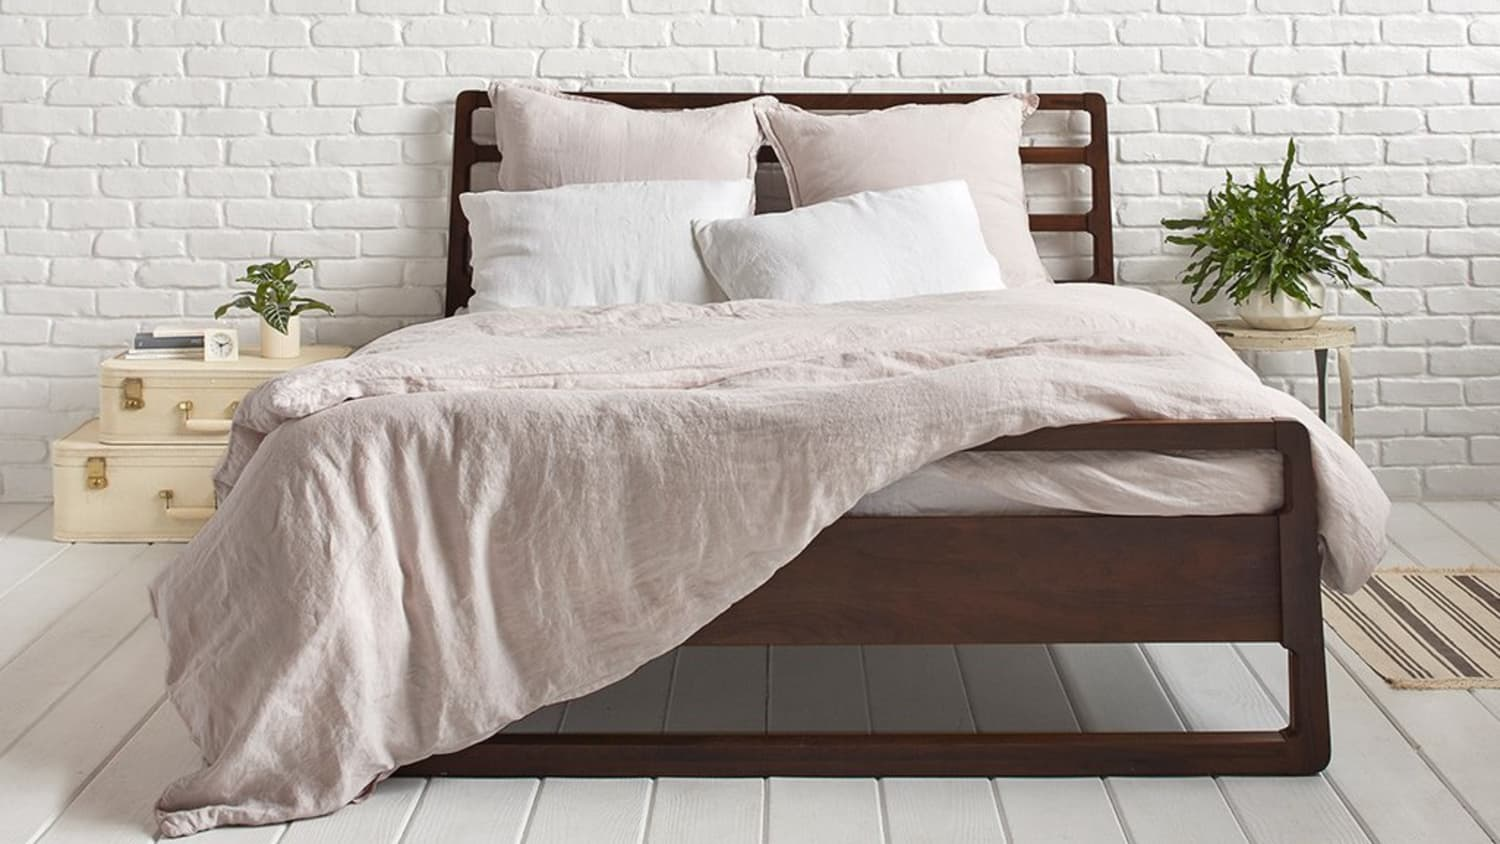 The Best Cotton And Linen Duvet Covers For A Great Night S Sleep Apartment Therapy